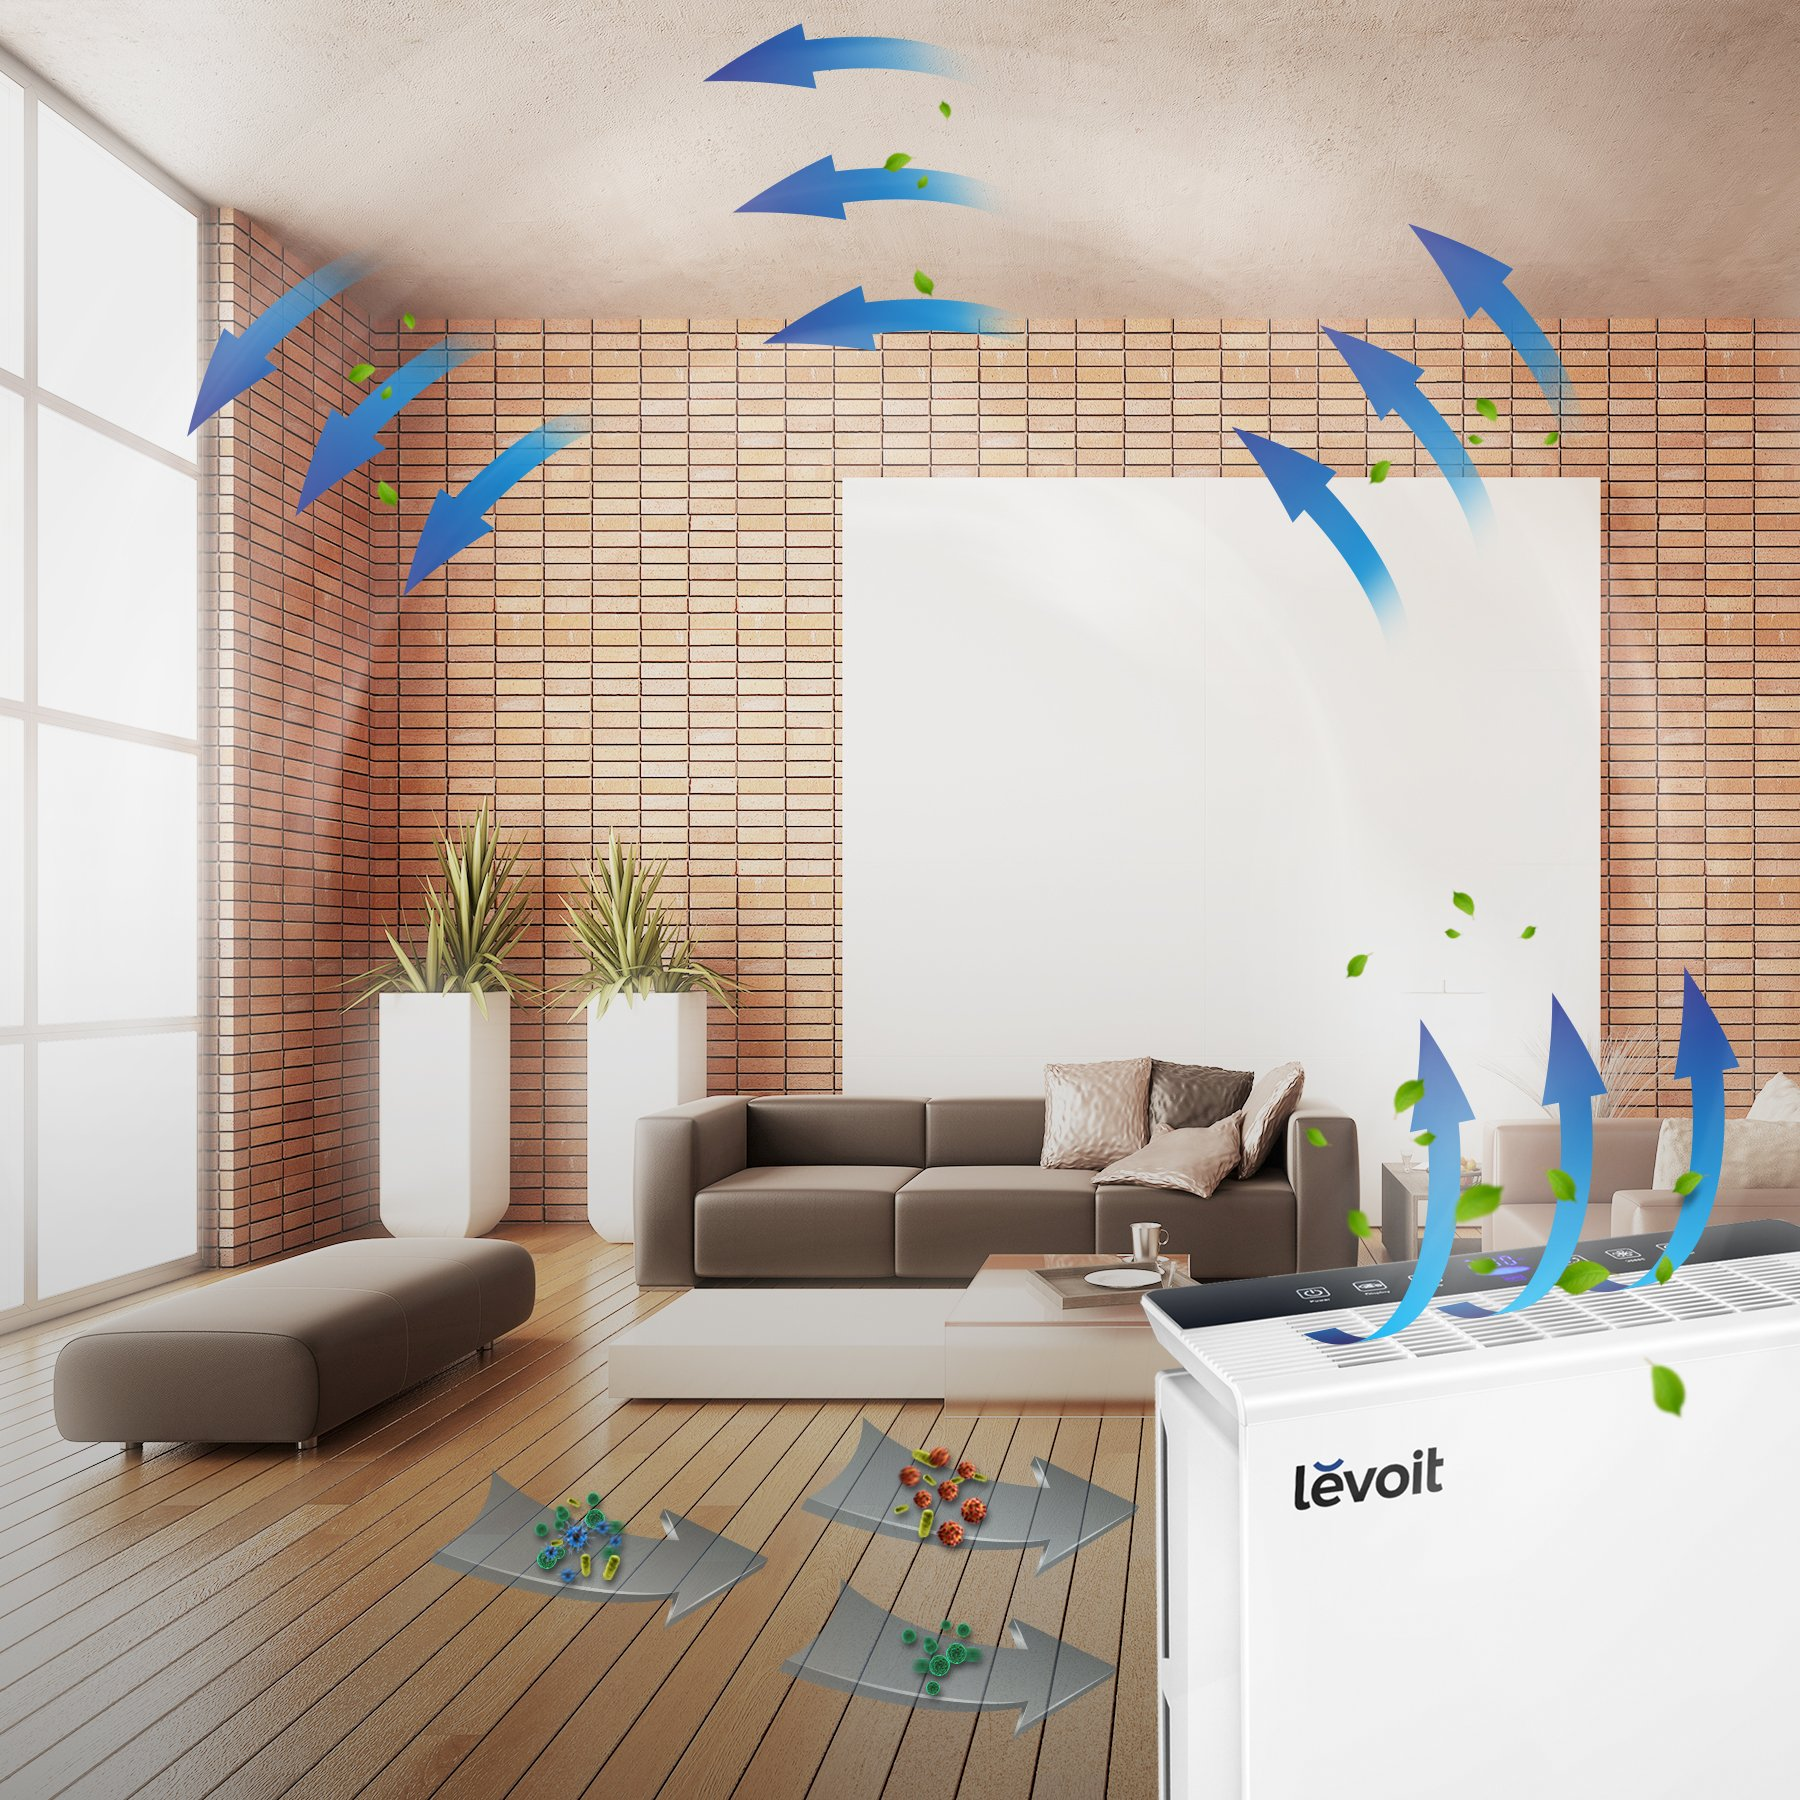 Levoit LV-PUR131 Air Purifier with True HEPA Filter, Odor Allergies Eliminator, Air Cleaner for Large Room, Dust, Smoke, Mold, Pets, Smokers, Home, Auto Air Quality Monitor, 322 sq. ft, US-120V by LEVOIT (Image #7)